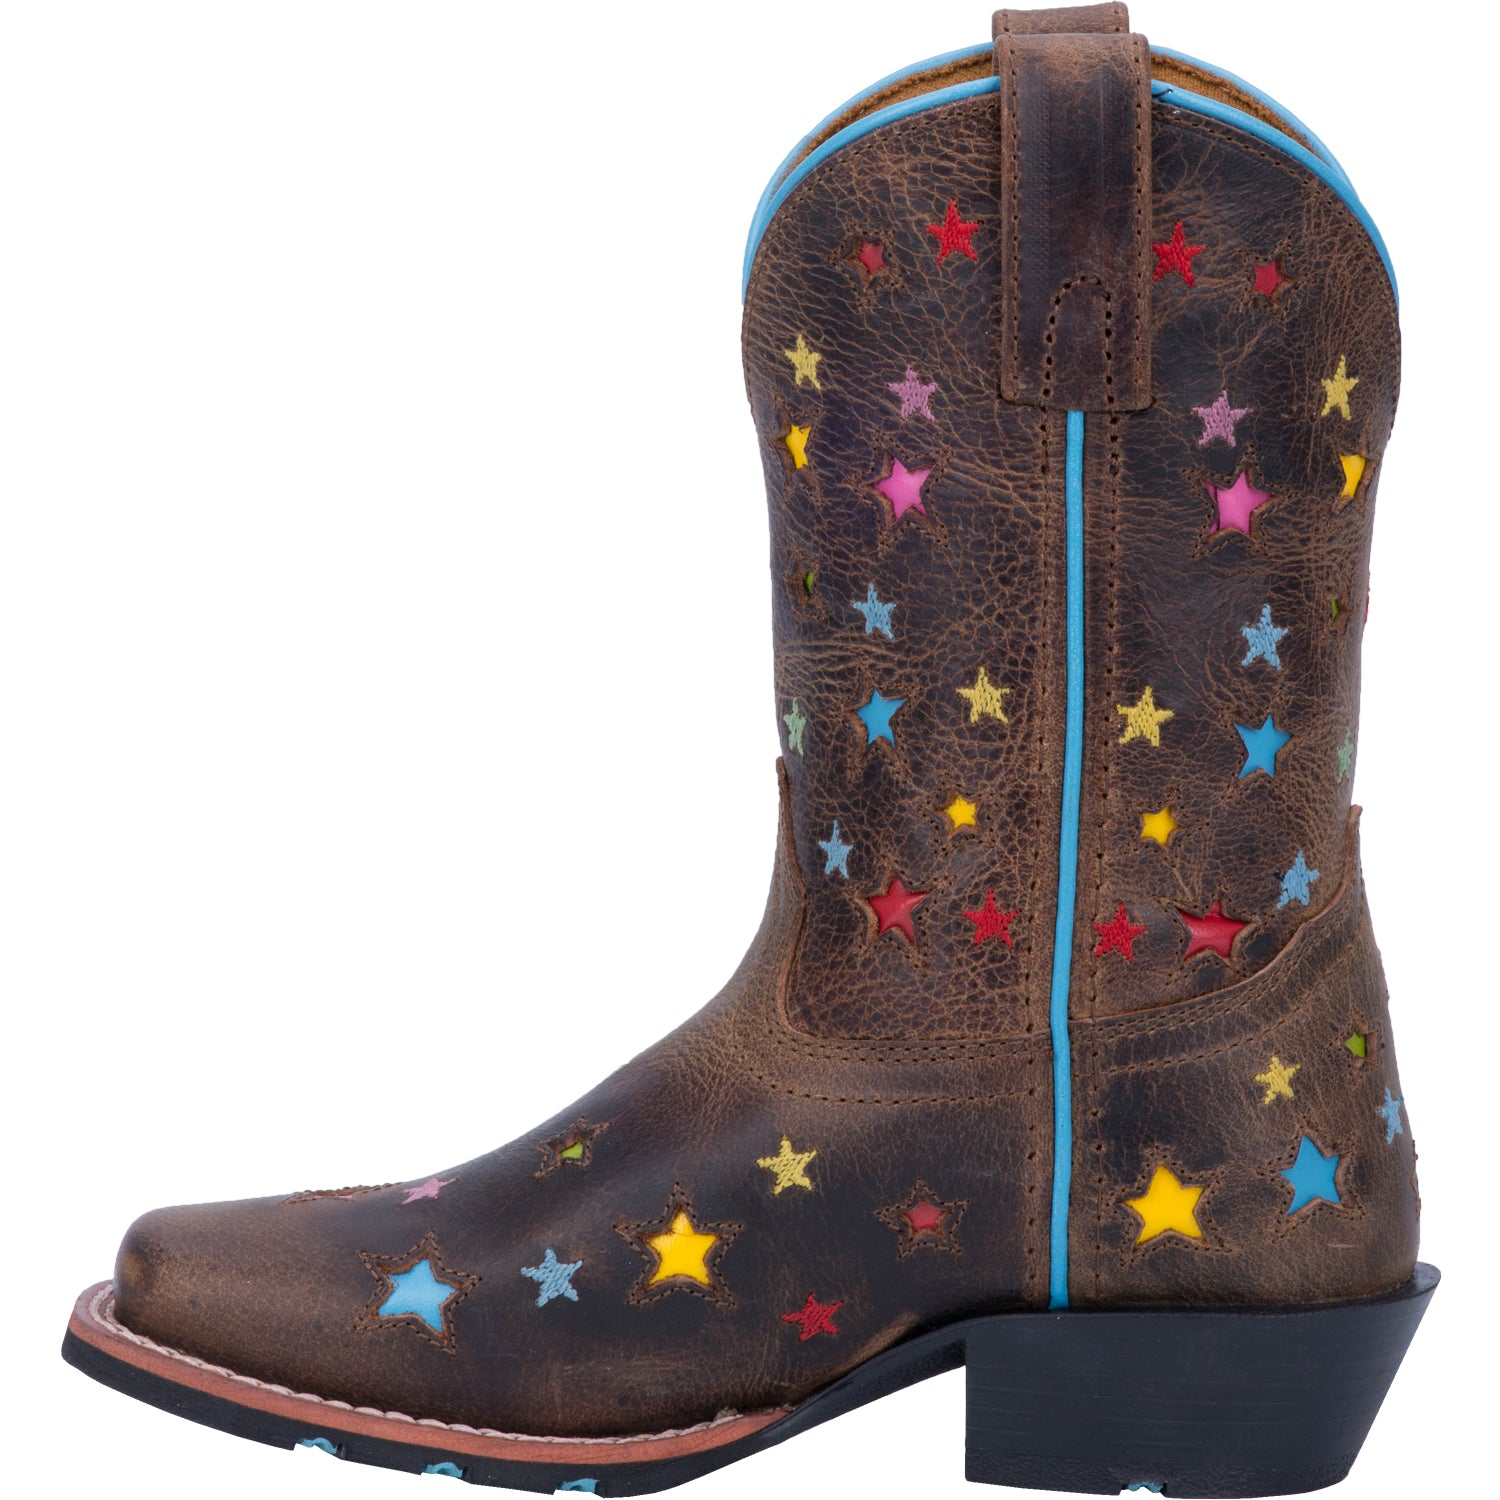 STARLETT LEATHER CHILDREN'S BOOT 15521811333162